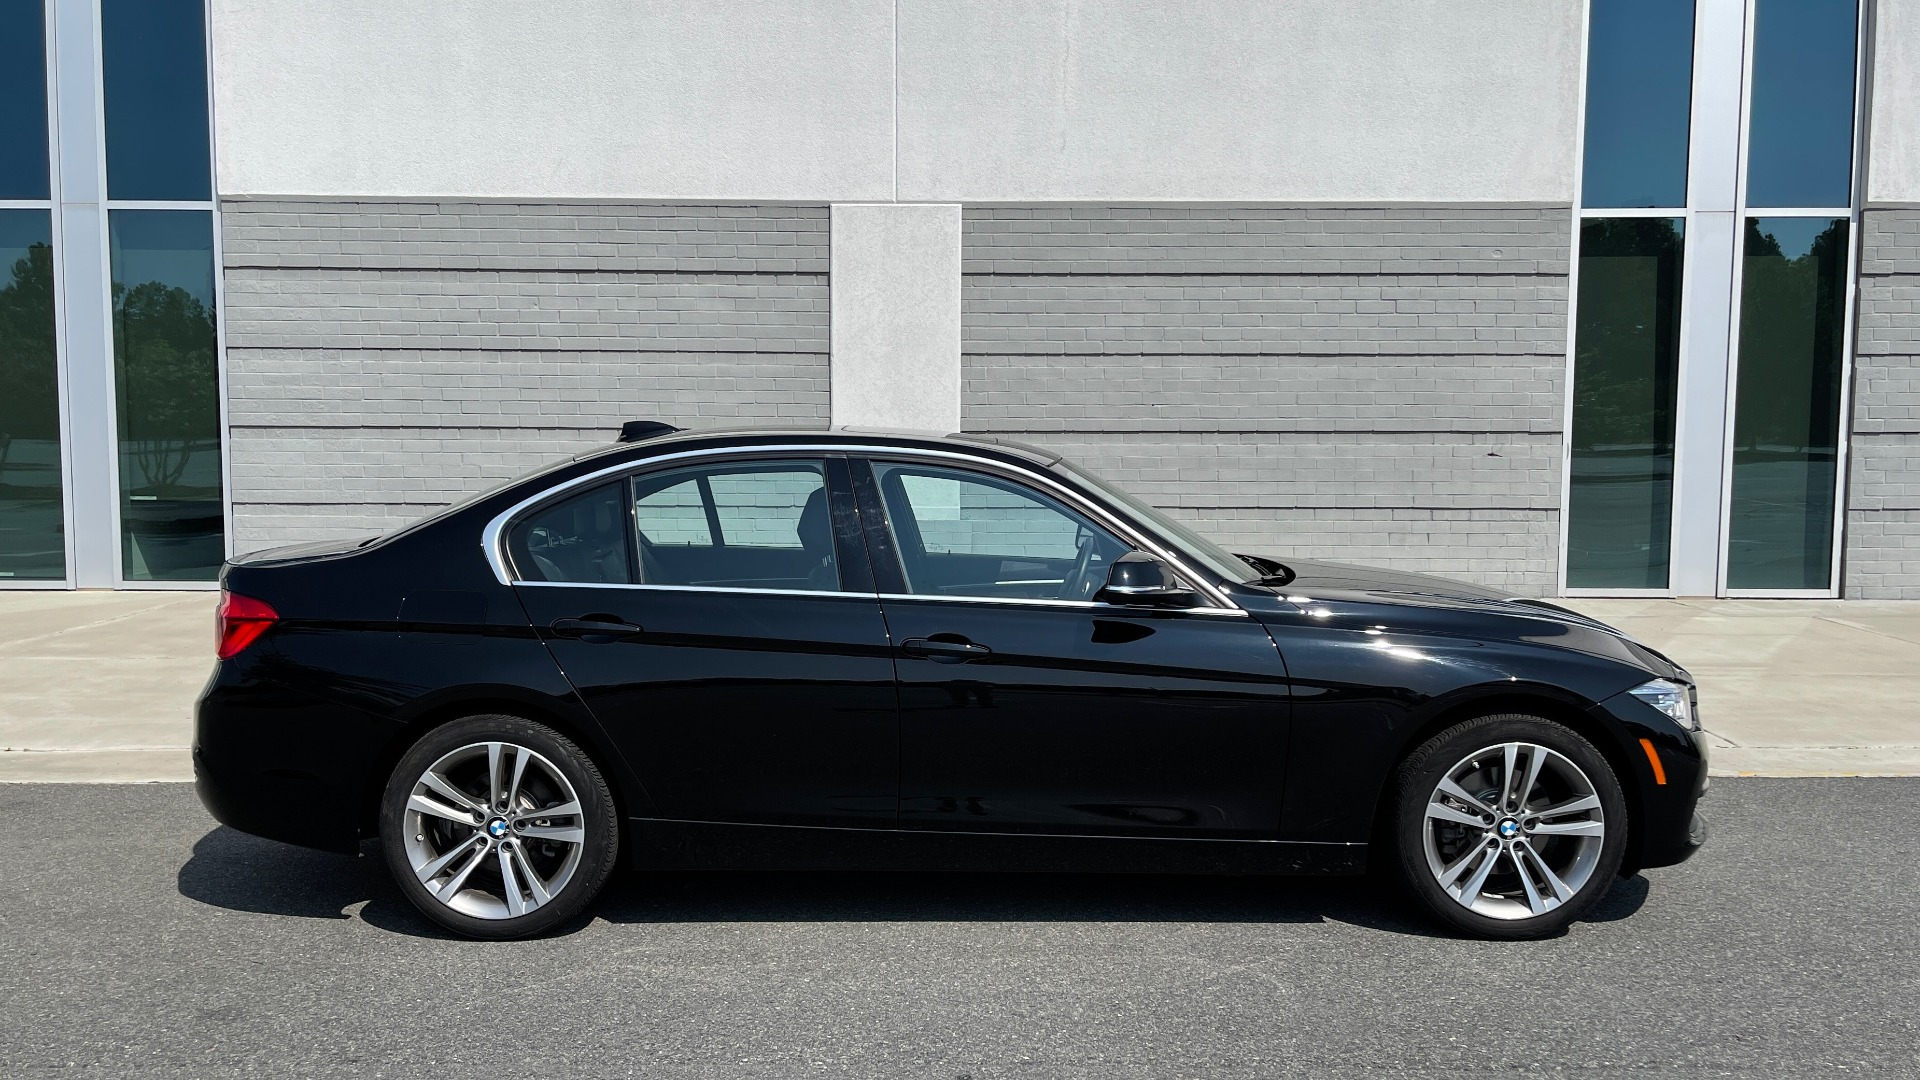 Used 2018 BMW 3 SERIES 330I XDRIVE / CONV PKG / SUNROOF / HTD STS / ABSD / REARVIEW for sale $30,695 at Formula Imports in Charlotte NC 28227 7